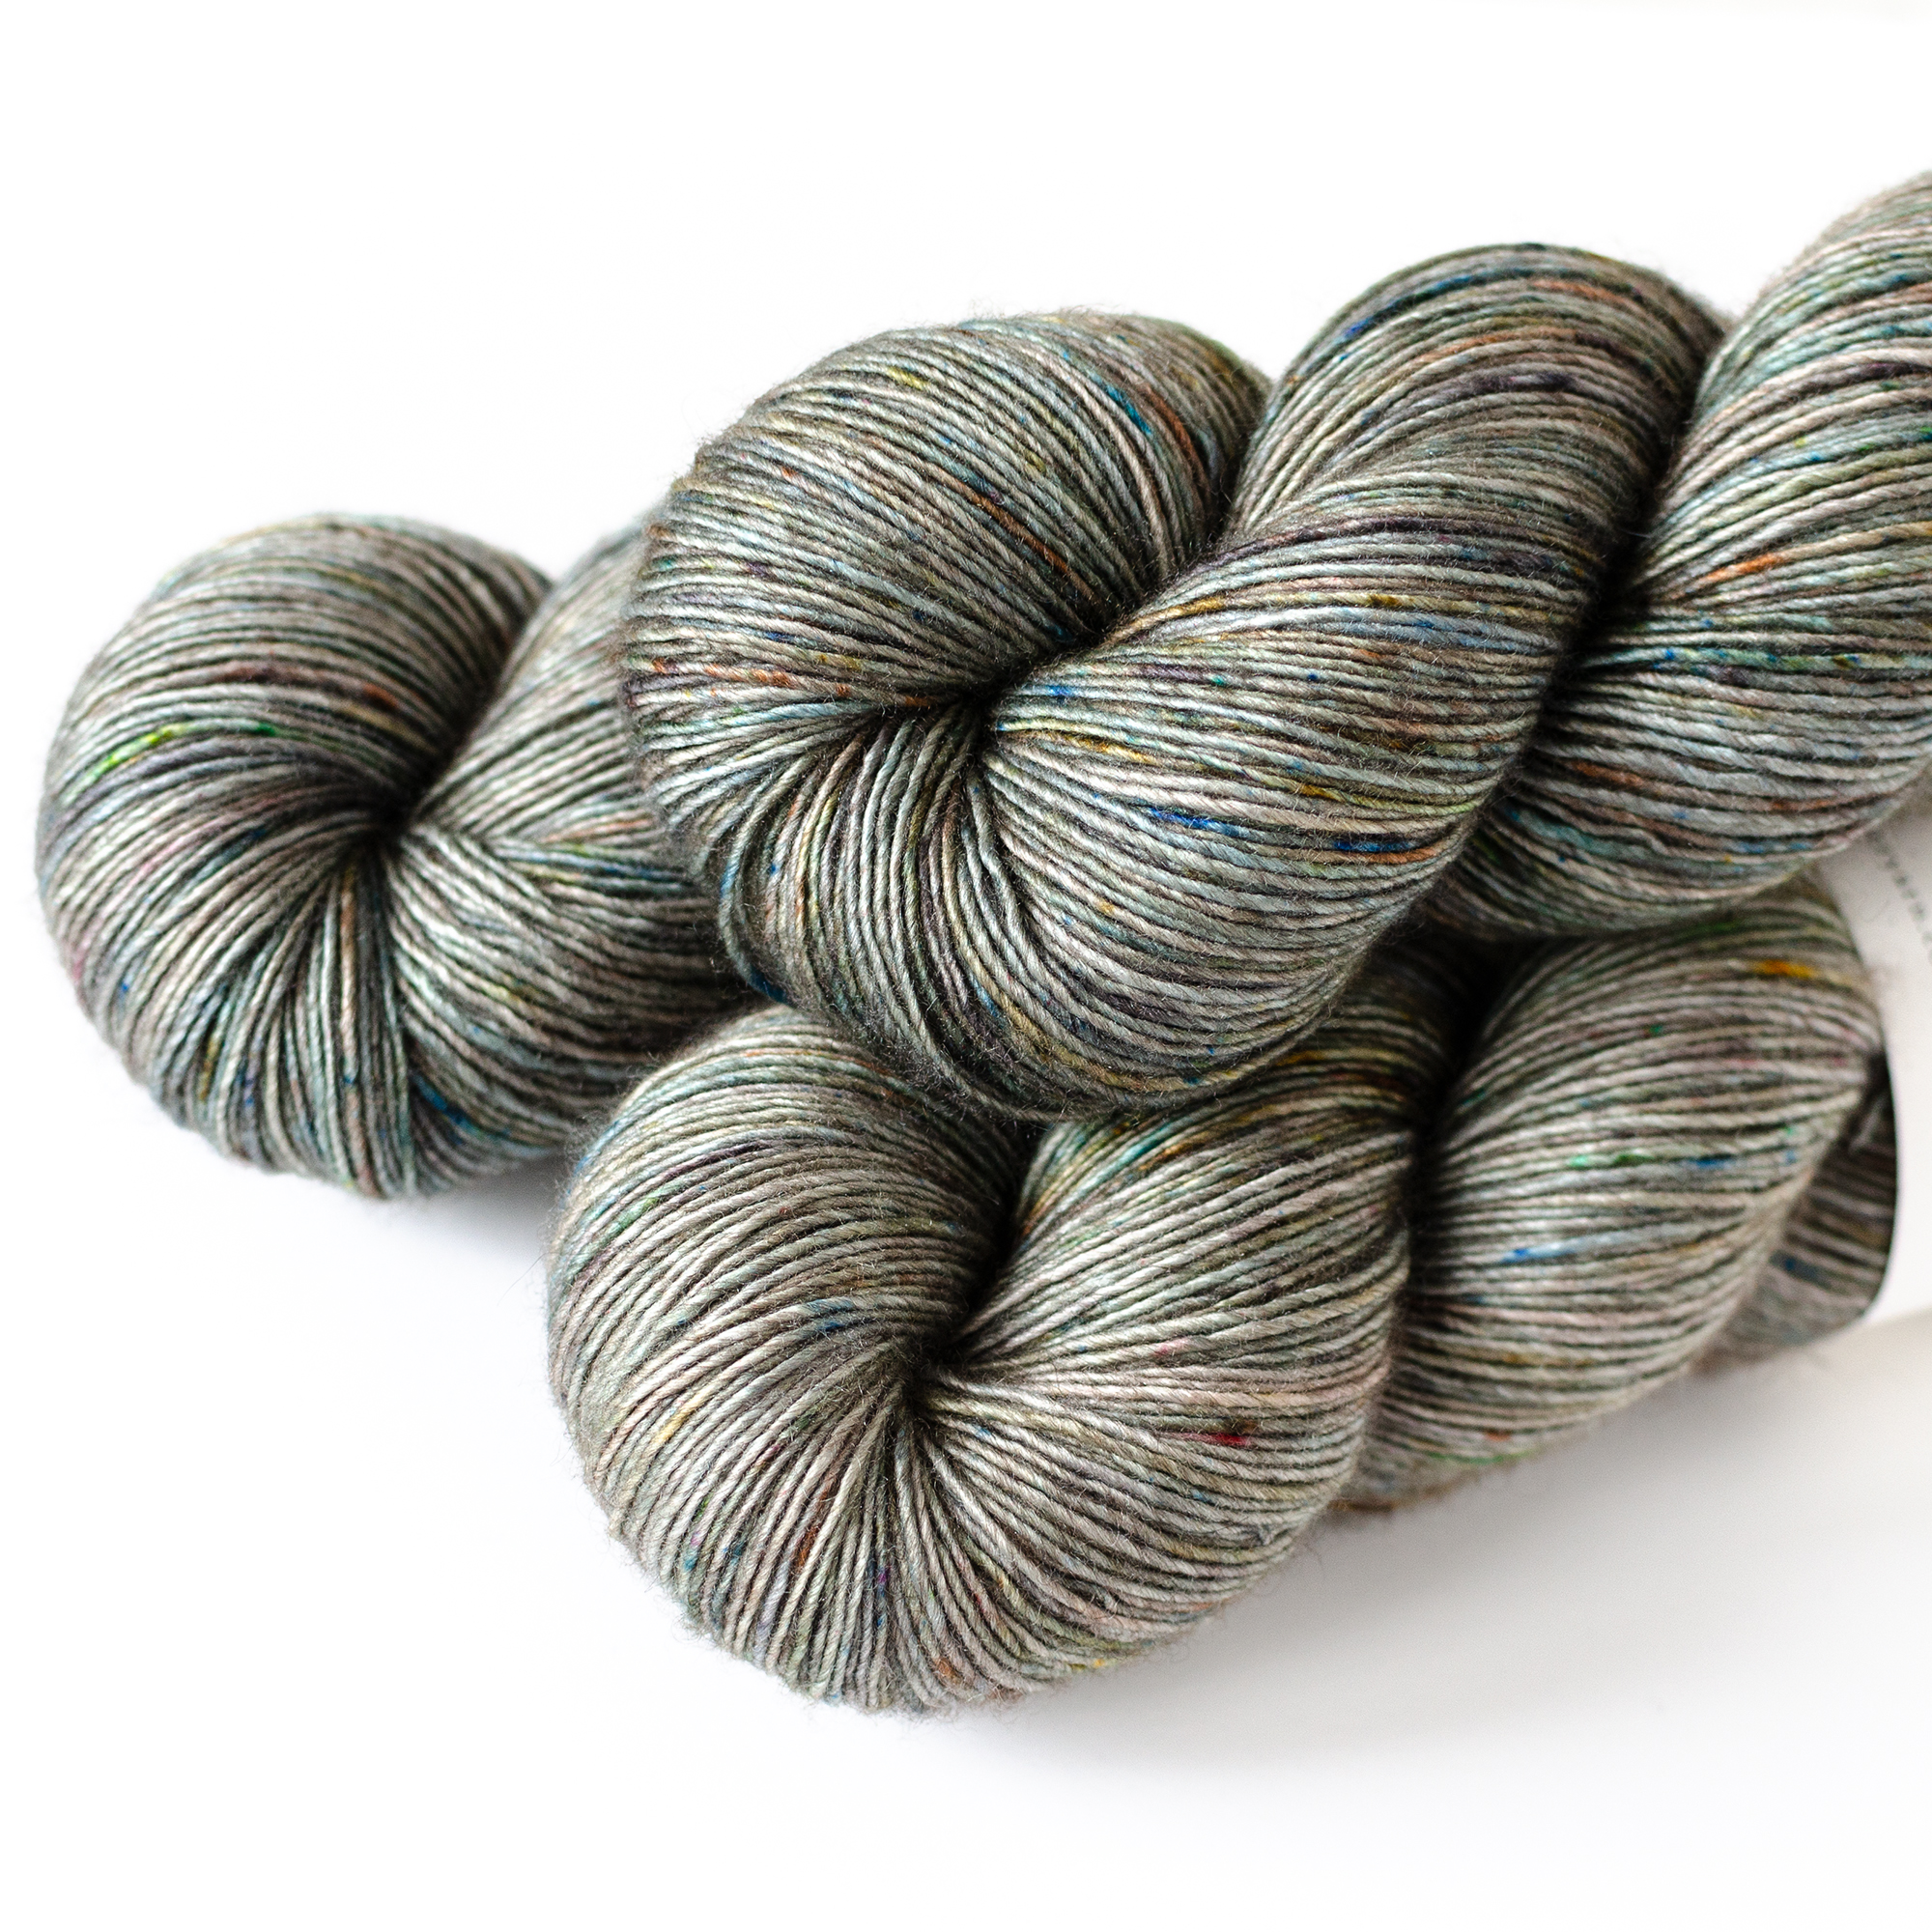 Vesper- $32  65% SW Merino, 20% Silk, 15% Yak  unplied  520 yards / 475 meters  120 grams  Fingering Weight  US 1-5 / 2.25-3.75mm  Hand wash / Dry flat  Undyed, this base is a brown/grey color. It's a smooth, soft, single ply yarn that has drape and shine from the silk content. Skeins are a large 120 grams.